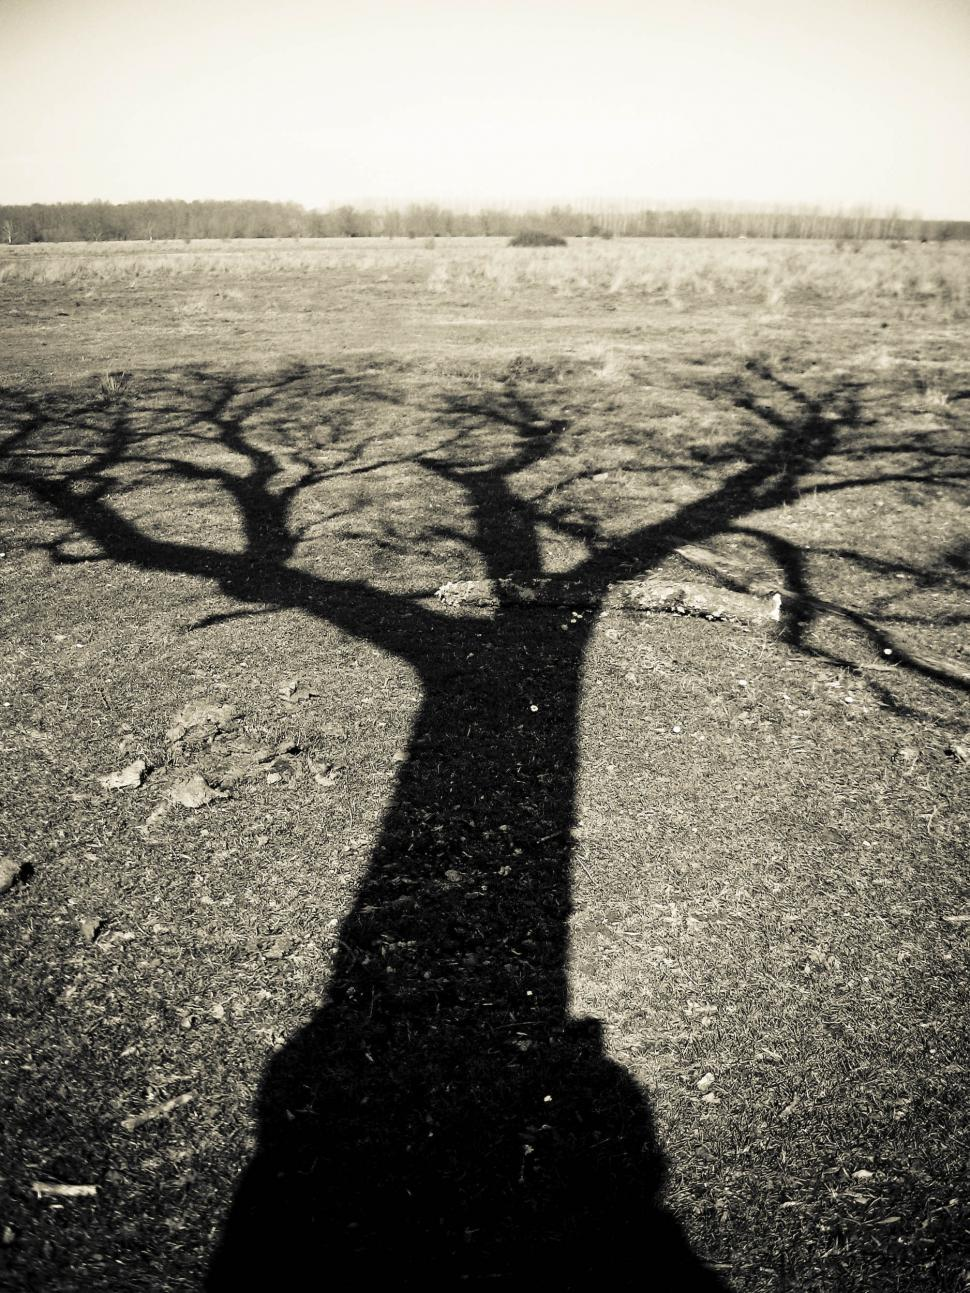 Download Free Stock Photo of shadow of lonely tree